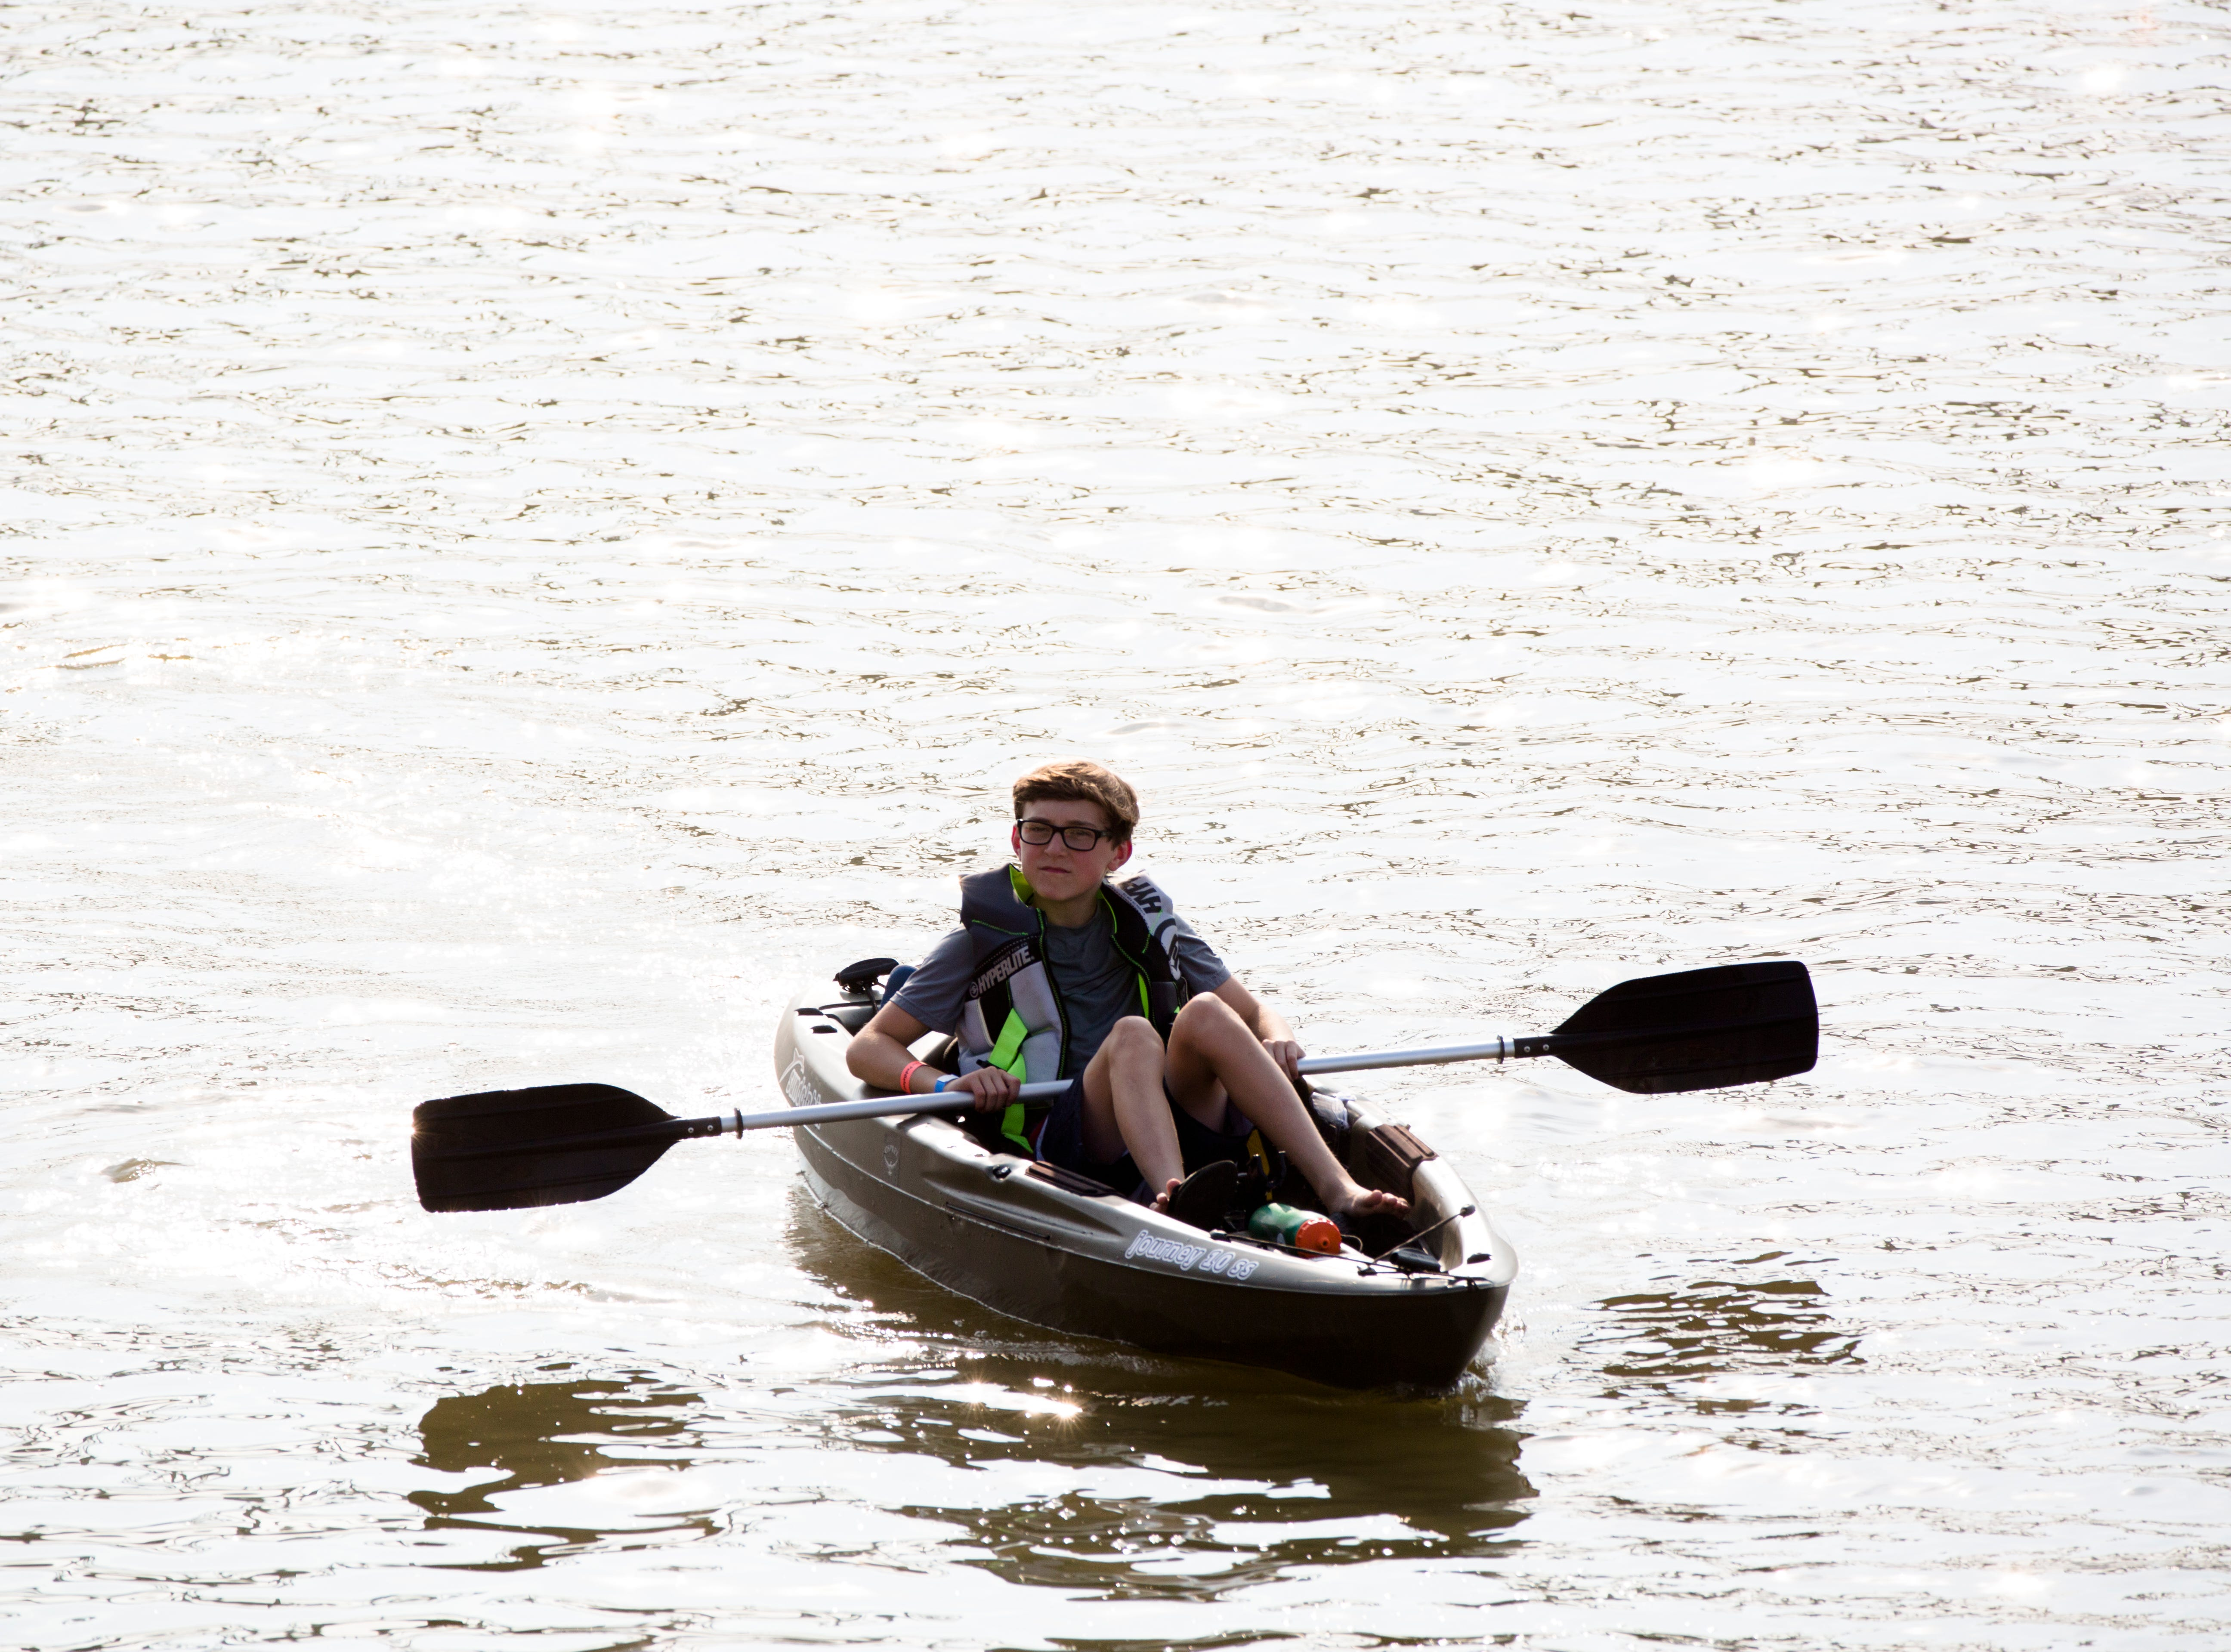 A person kayaks down the Ohio River during the 17th annual Ohio River Paddlefest in Cincinnati on Saturday, Aug. 4, 2018.  According to organizers about 2000 people participated in the event which Outdoor Adventure Clubs of Greater Cincinnati raised almost $100,000.